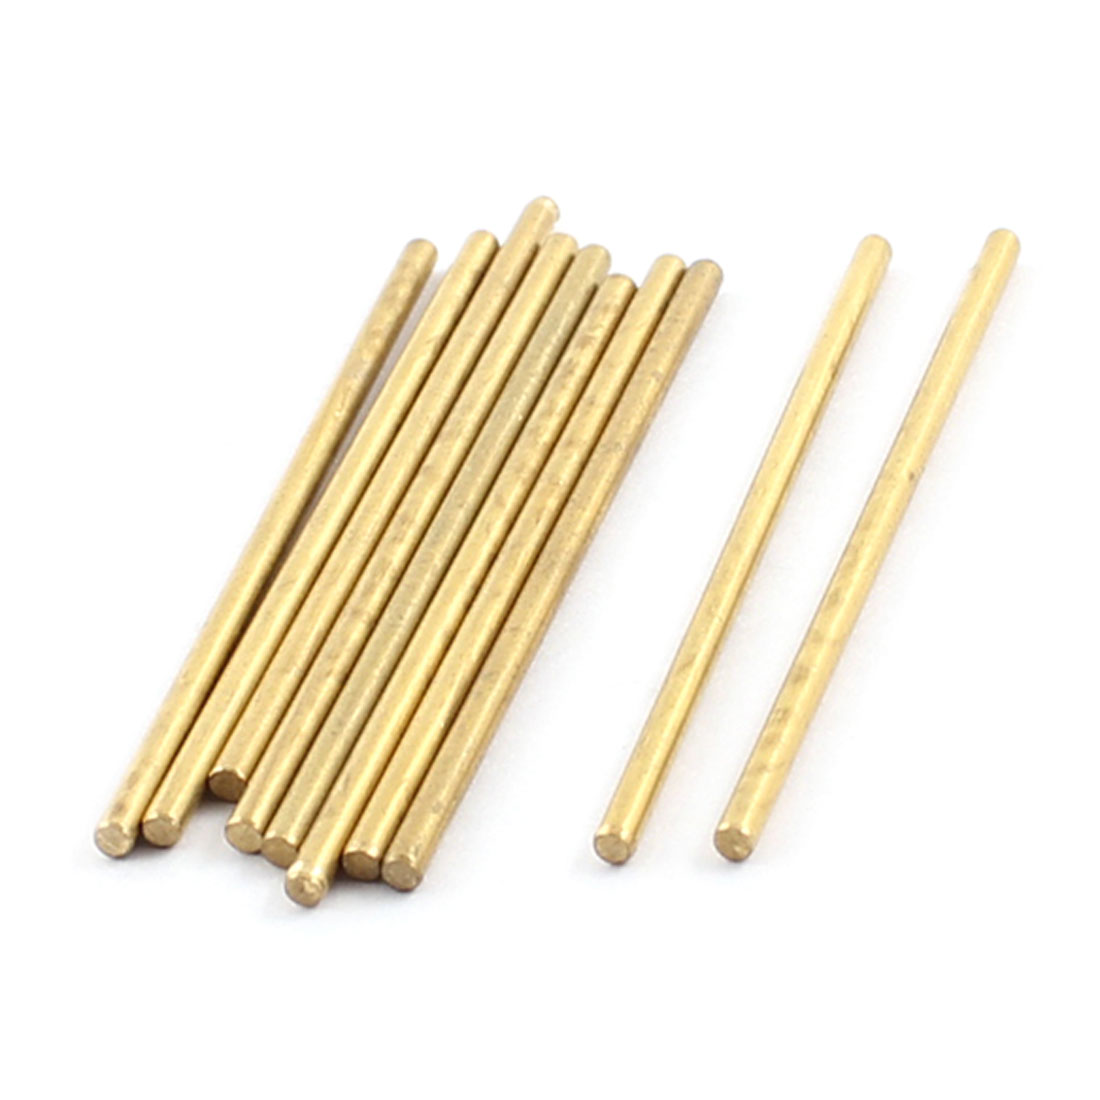 10Pcs 2mm Dia 50mm Length Brass Round Rod Shaft for RC Toy Car